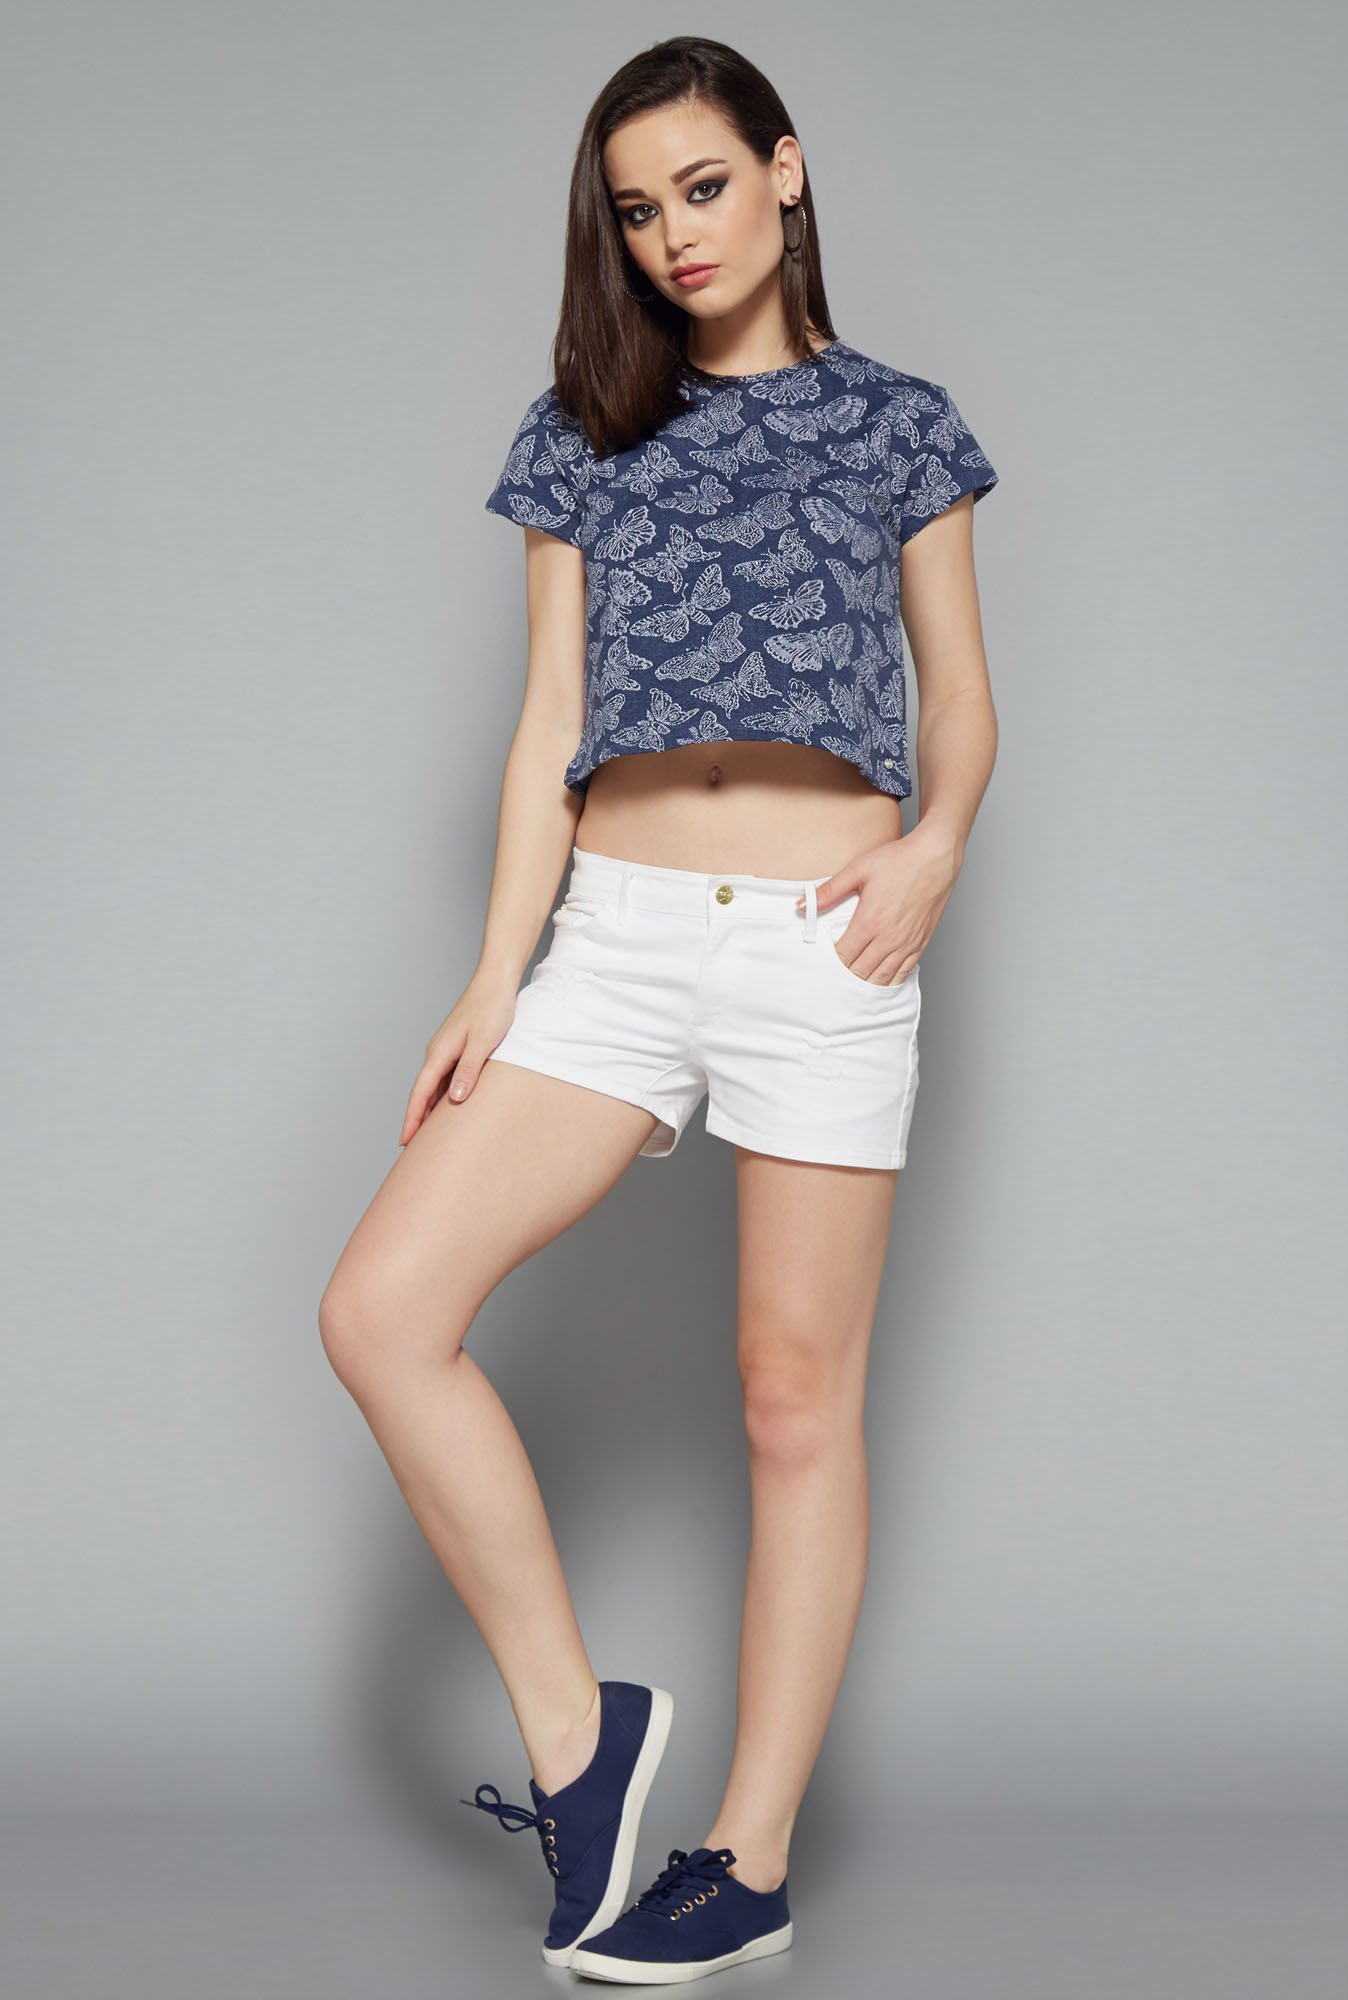 Nuon Blue Printed Top